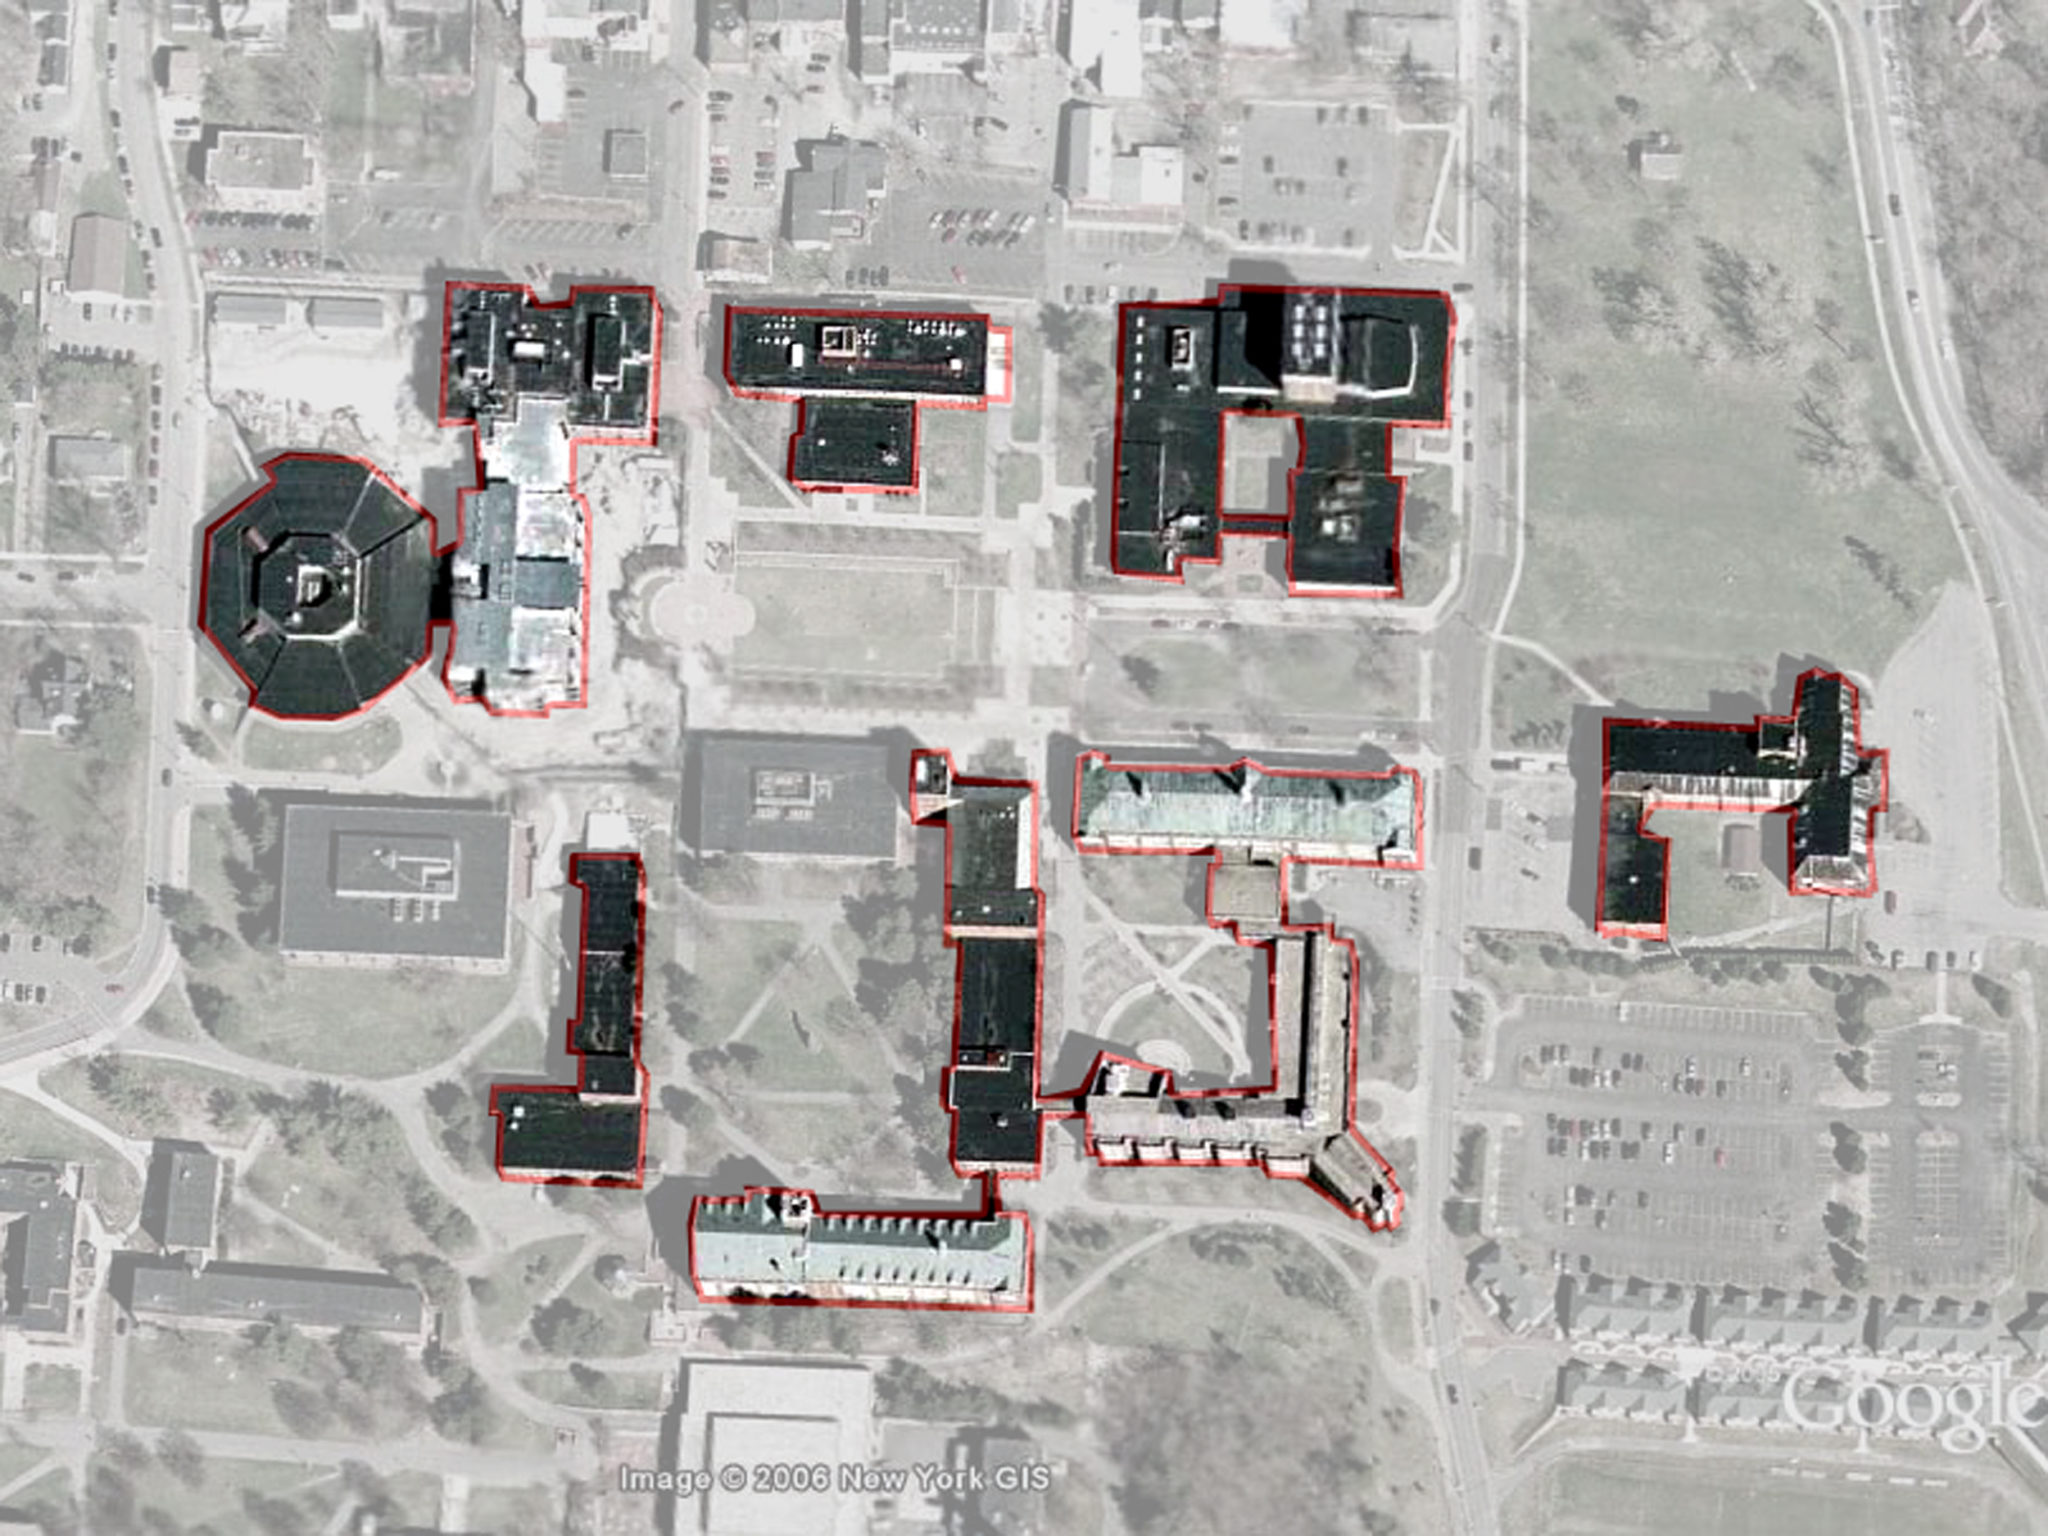 SUNY Geneseo: Academic Master Plan | HHL Architects on suny college campus map, newton campus map, elmira campus map, mount vernon campus map, cazenovia campus map, springfield campus map, wheaton campus map, macomb campus map, lawrence campus map, jamestown campus map, marion campus map, webster campus map, wichita campus map, garden city campus map, aurora campus map, newark campus map, flanagan campus map, charleston campus map, spring valley campus map, kingston campus map,